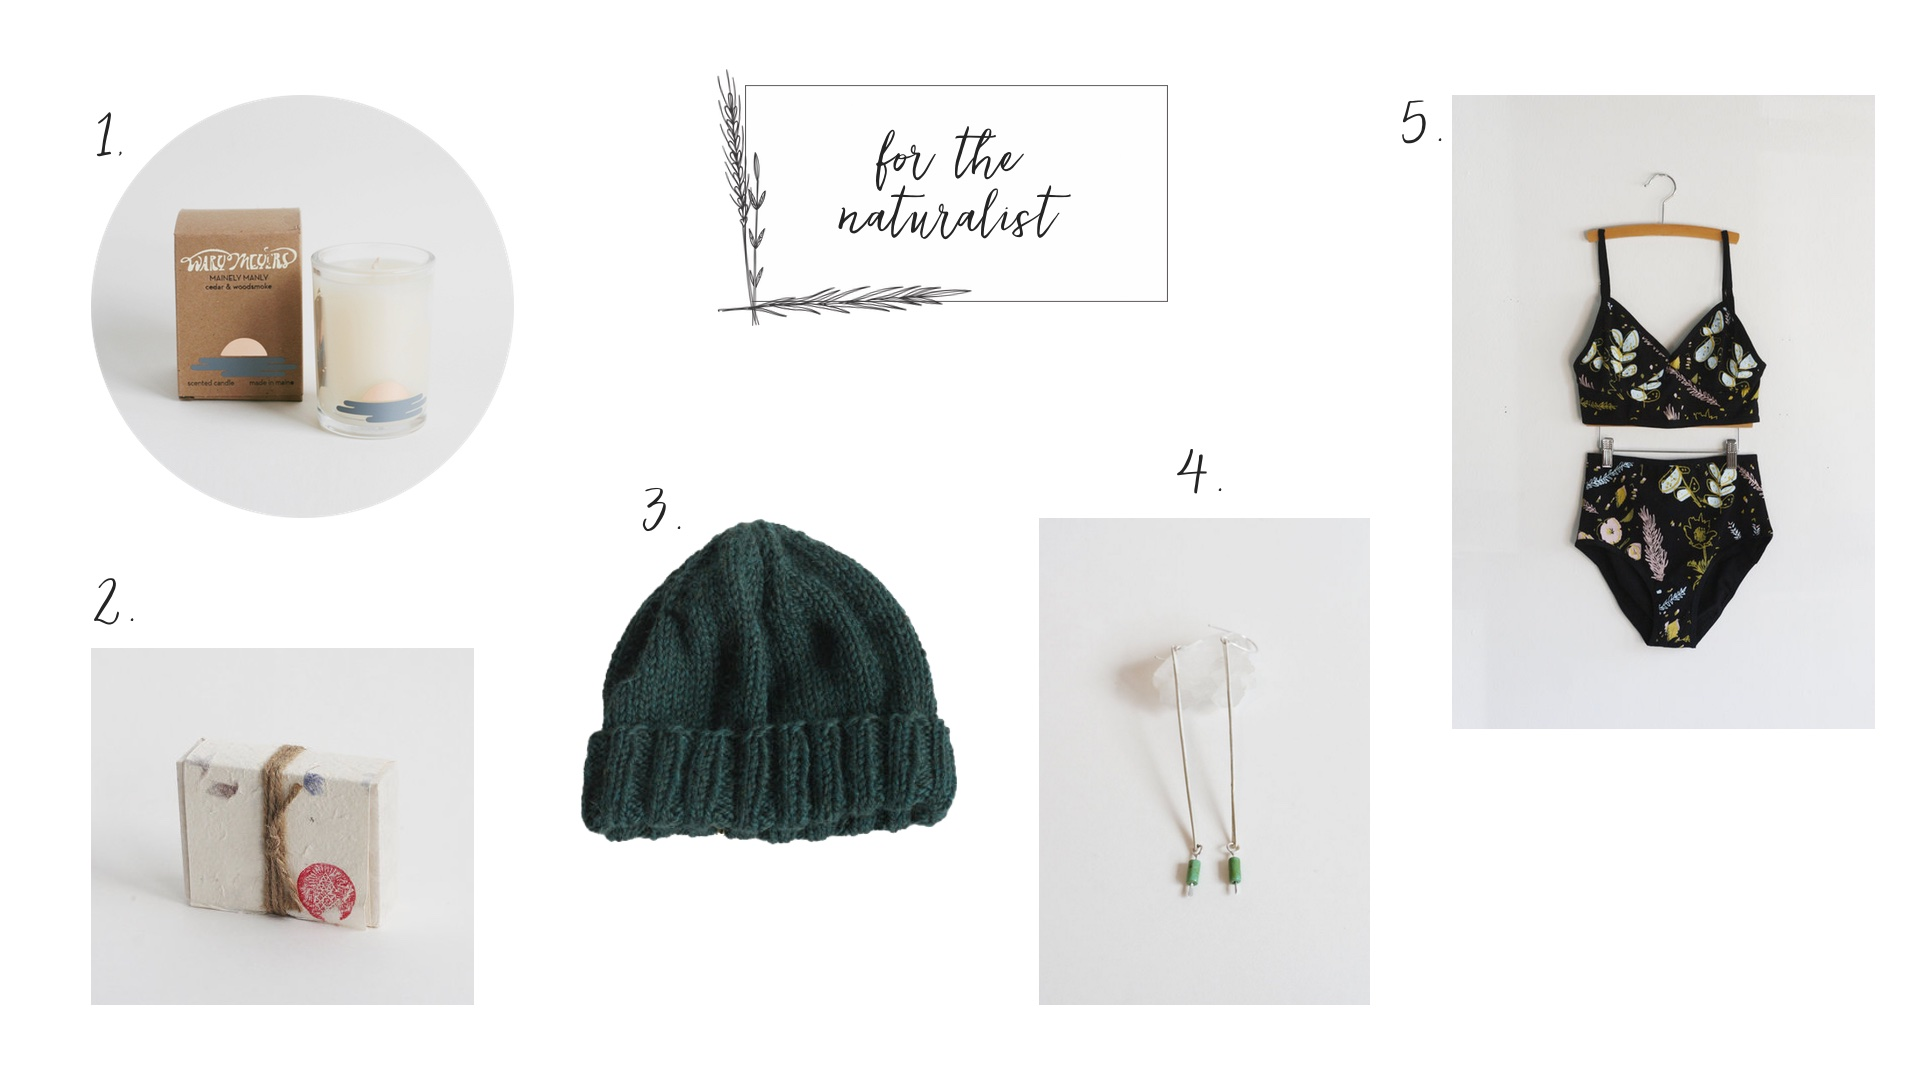 1.  W  ary Meyers Candle  2.  Essential Oil Soap  3.  Hand Knit Hat  4.  Long Drop Earrings  5.  Desert Floral Bra and Underwear